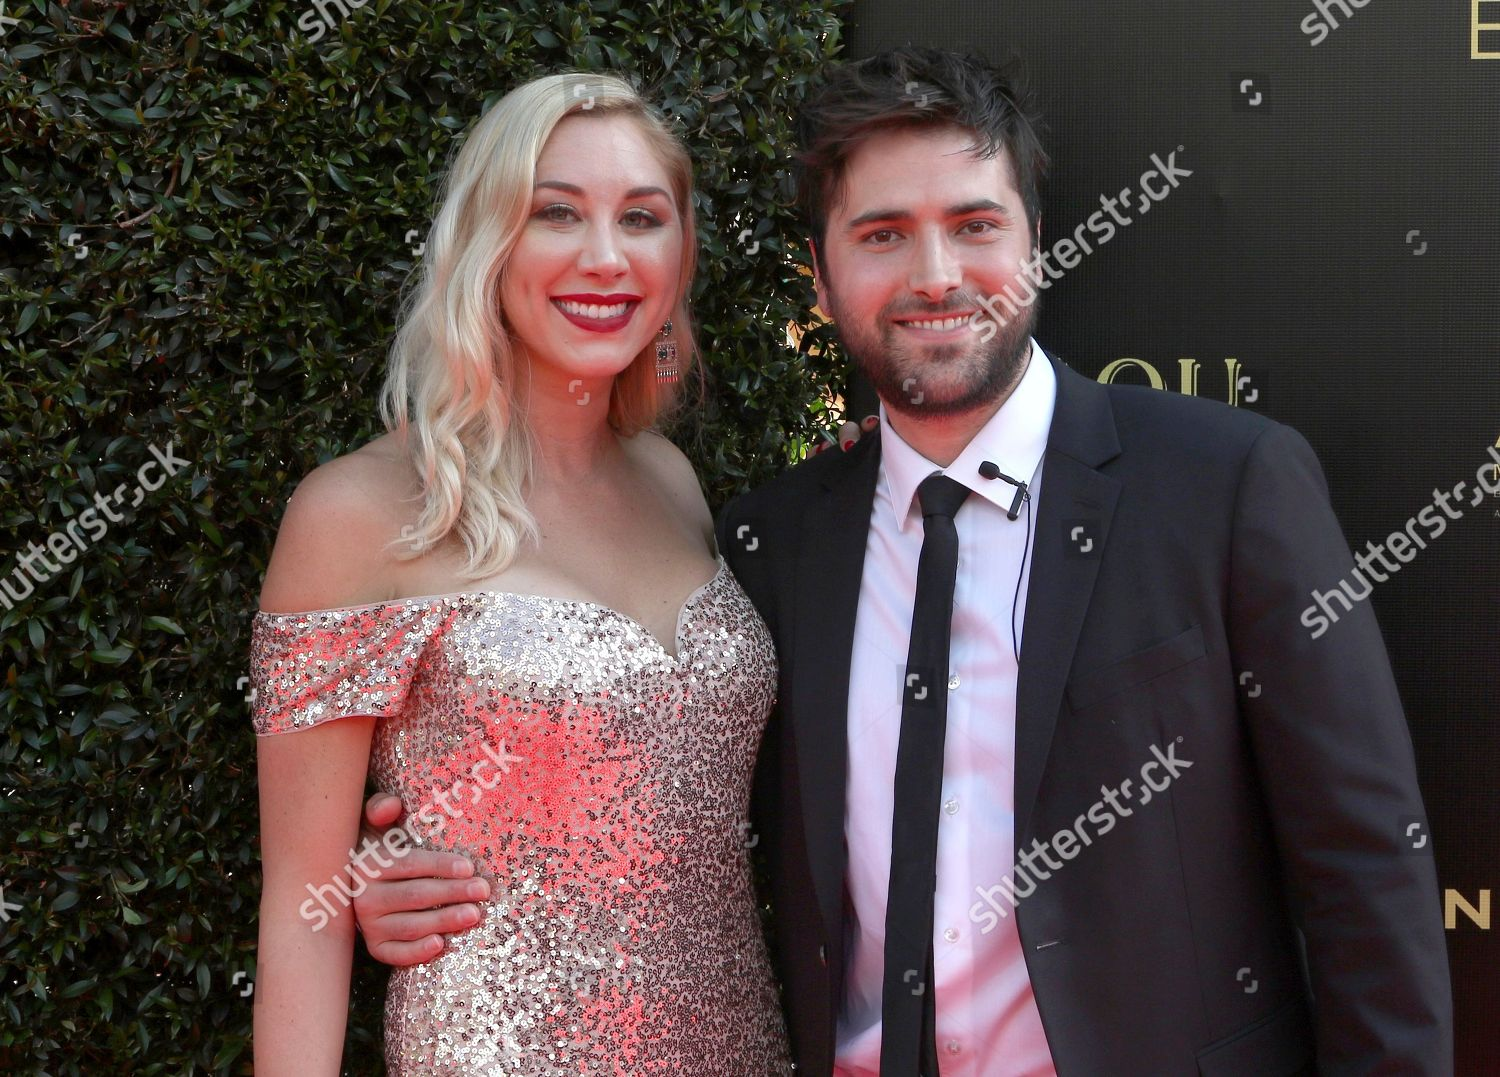 Stock photo of 45th Annual Daytime Emmy Awards - Arrivals, Pasadena, USA - 29 Apr 2018